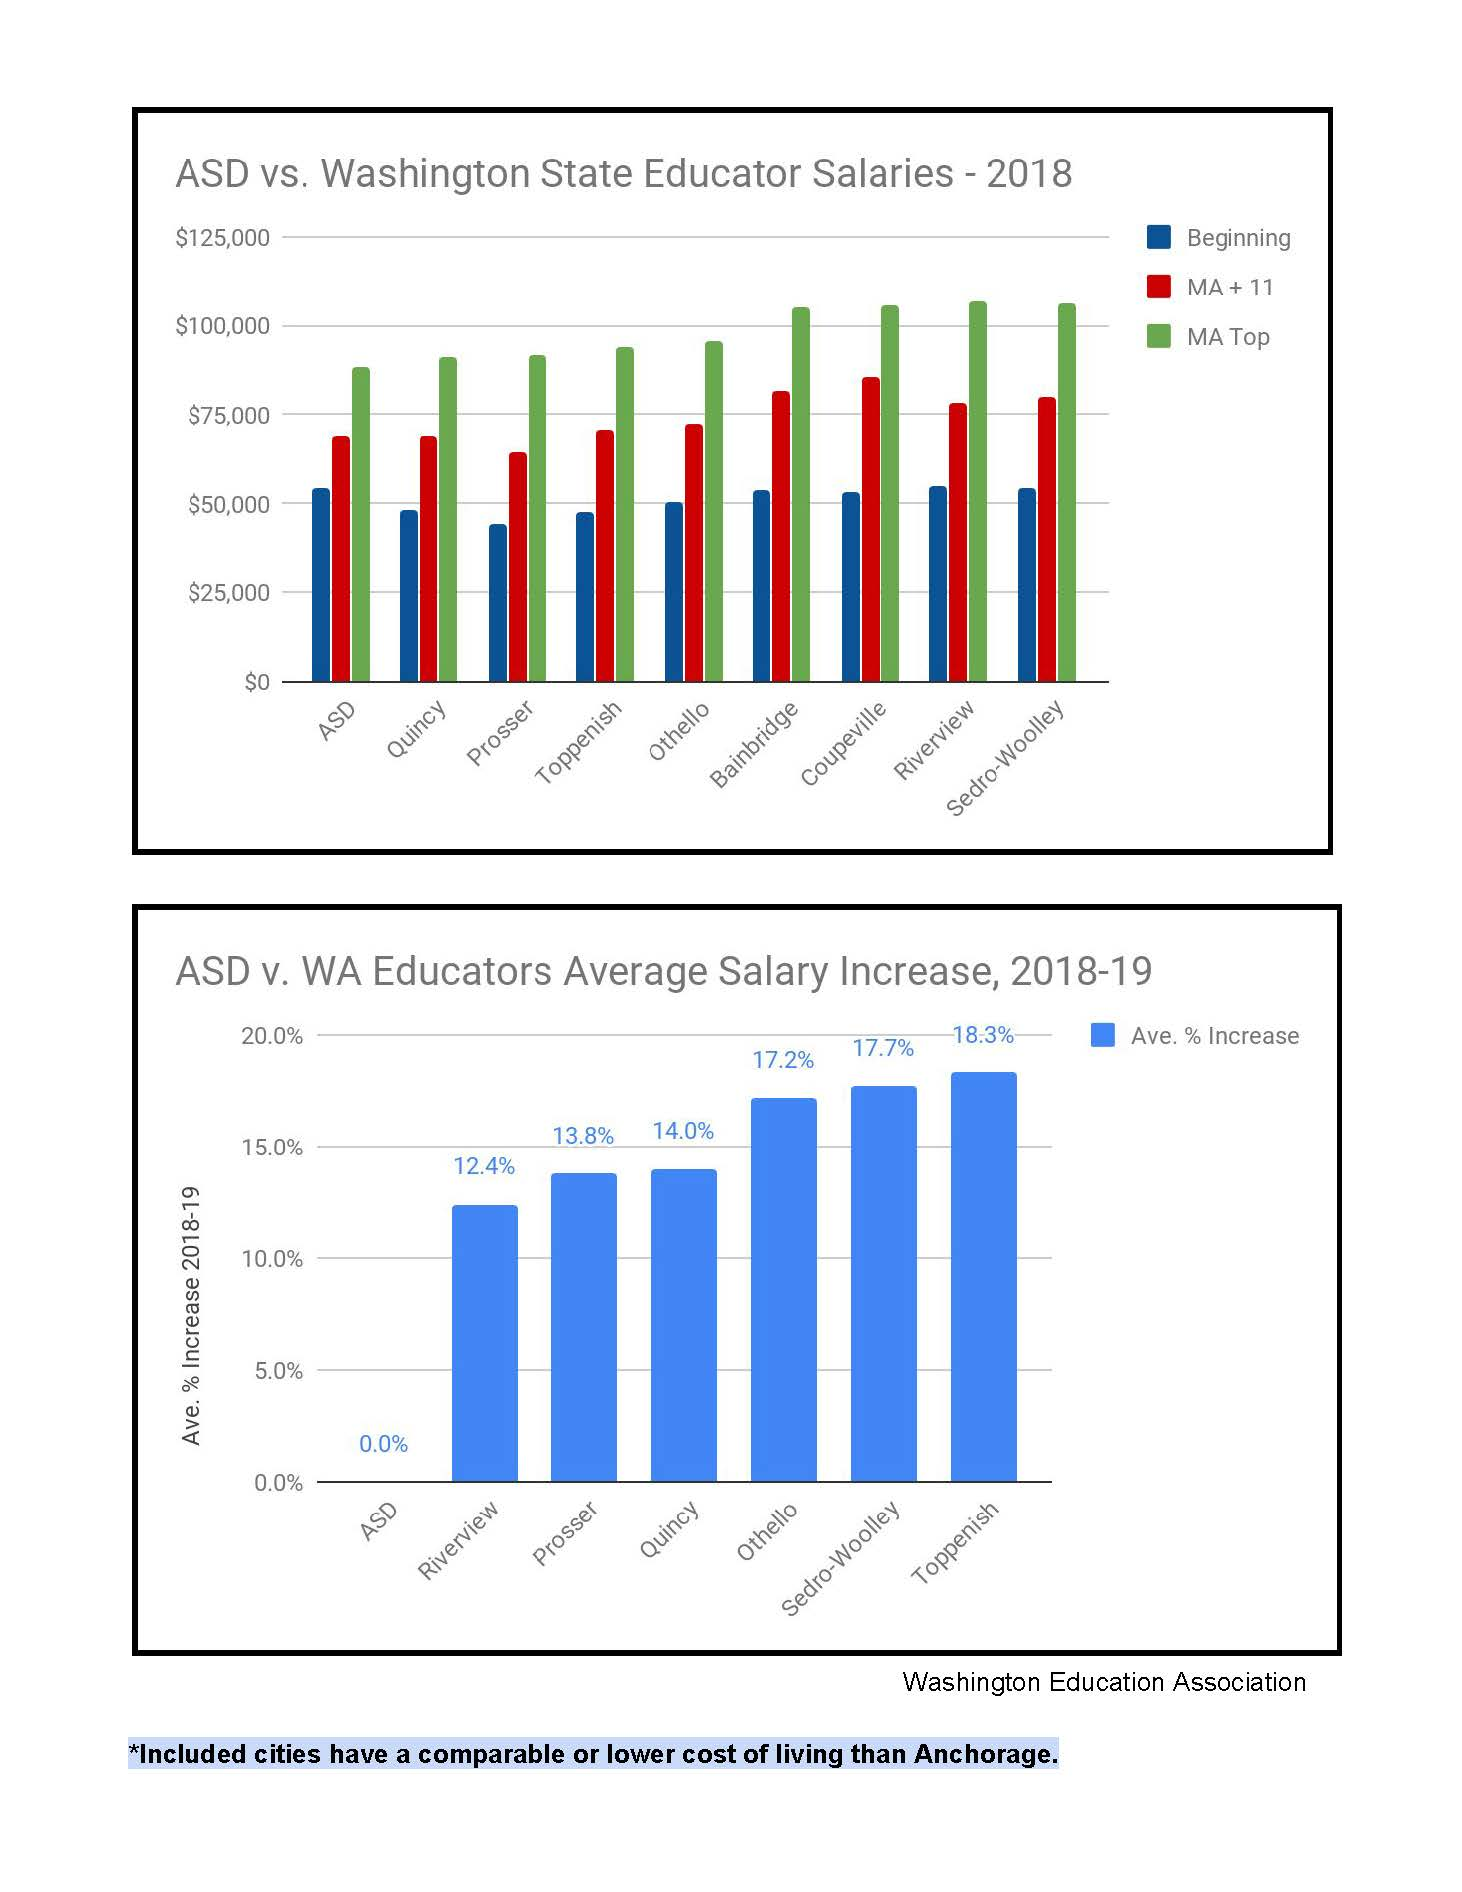 ASD v. WA Salaries   * Given the national teacher shortage and increasing mobility of employees in the United States, it is no longer sufficient to only compare to other Alaskan districts, as all districts in the country are competing with each other for employees. Many districts in our closest neighboring state, Washington, have recently been offering substantial compensation increases. There are many Washington districts who have higher salaries than those included in these graphs and/or given higher percentage increases. However, these were highlighted because they are in communities with a cost of living comparable to or lower than that of Anchorage - and yet higher salaries overall. (And while not shown here, only one has a pay scale with more steps than ASD's.) Coupled with a defined benefit retirement system, Washington and other states are becoming more and more attractive places for educators to work and live relative to Anchorage - a fact that ASD will have to address.